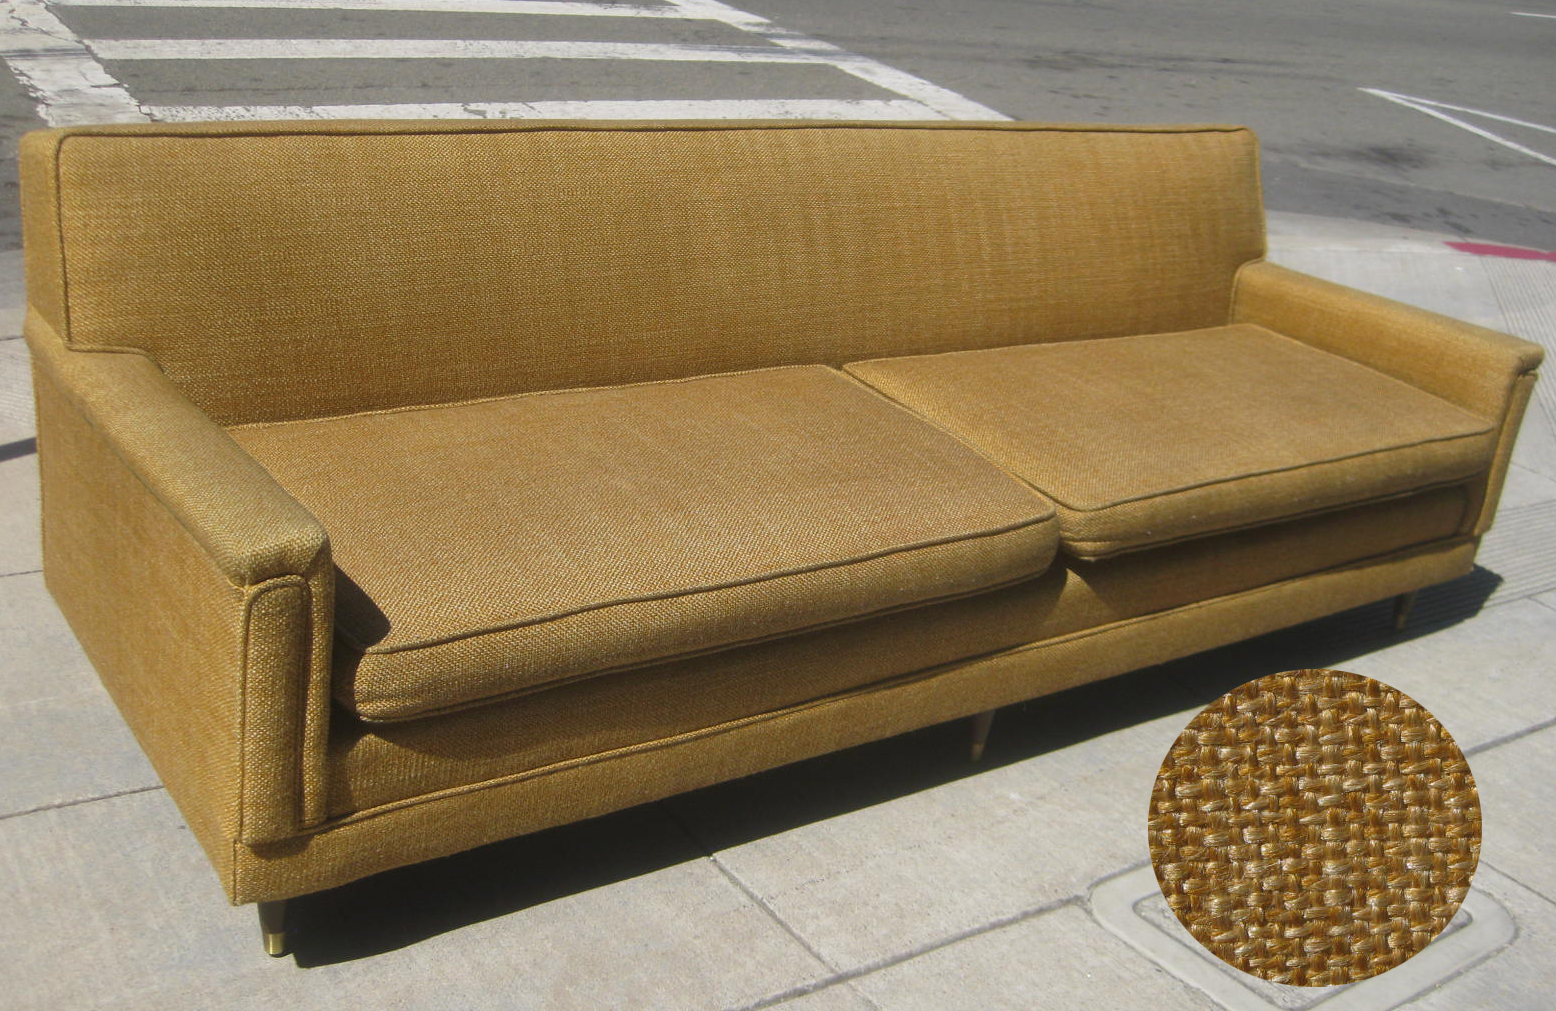 Antique Pullman Sofa Bed Poltrona Bolzano Davenport Couch Furniture For Your Home In The 1920s